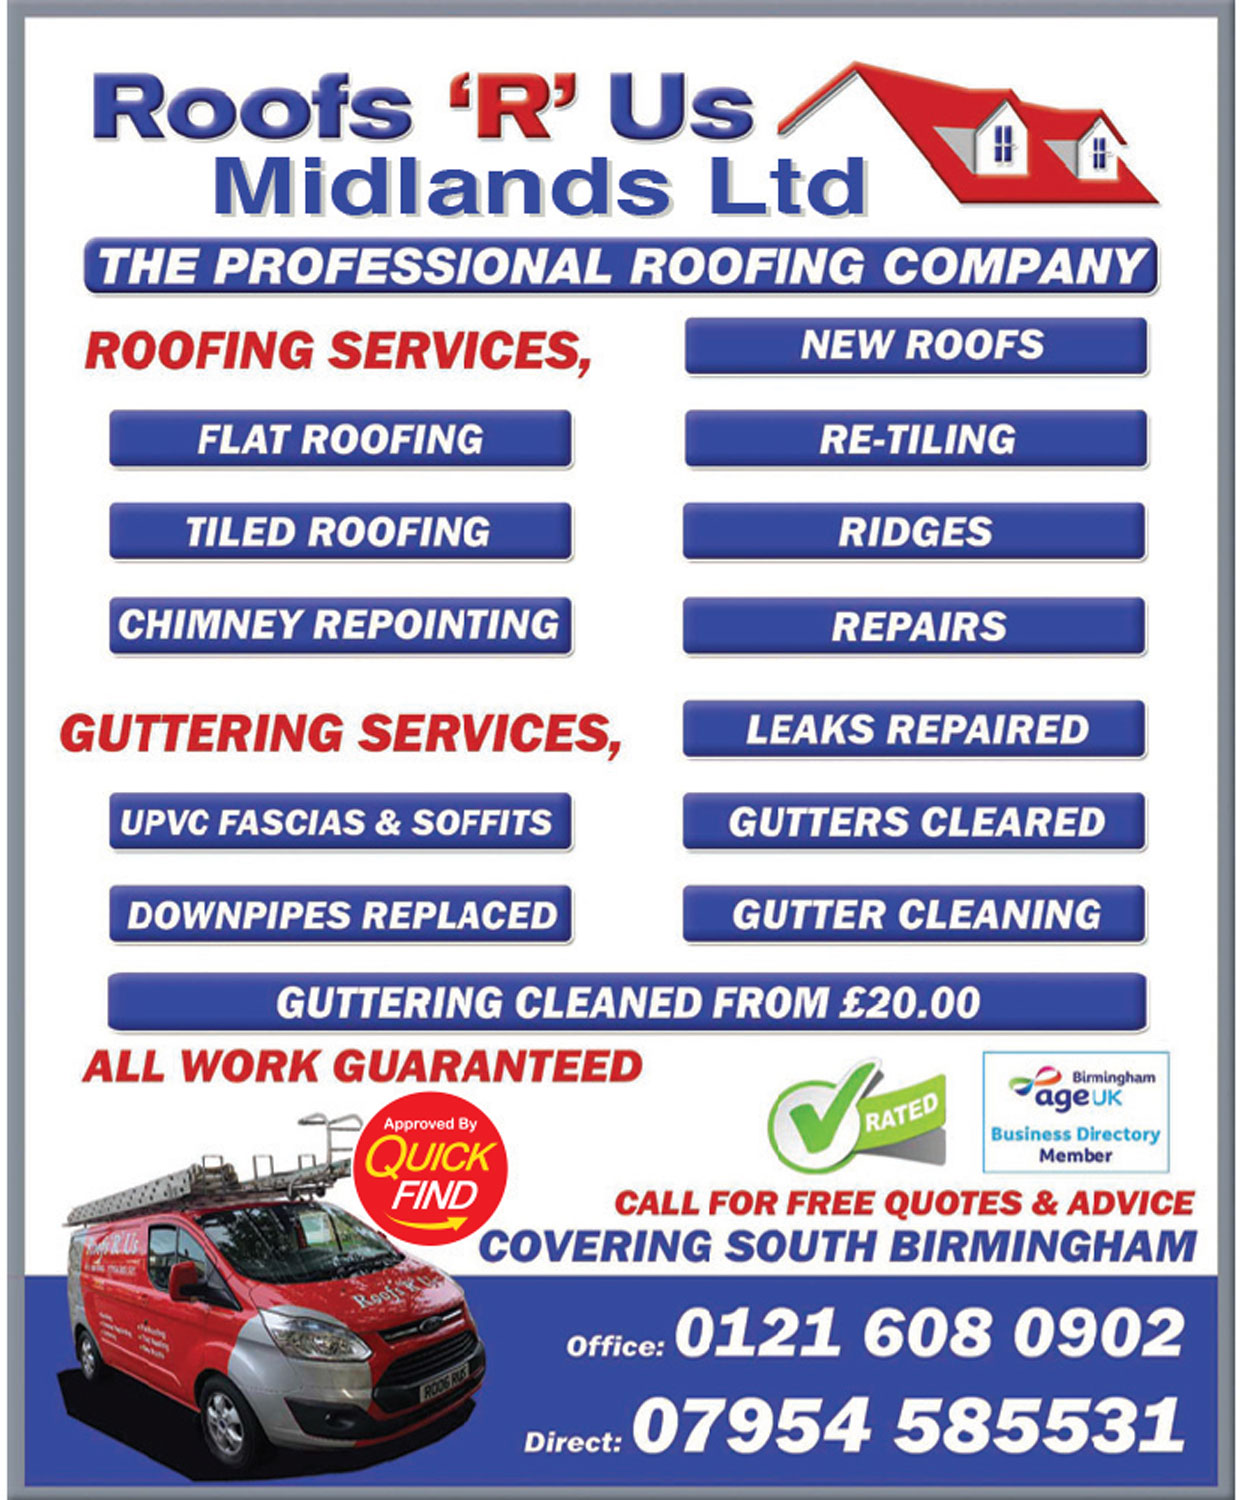 Roofs R Us Midlands Ltd